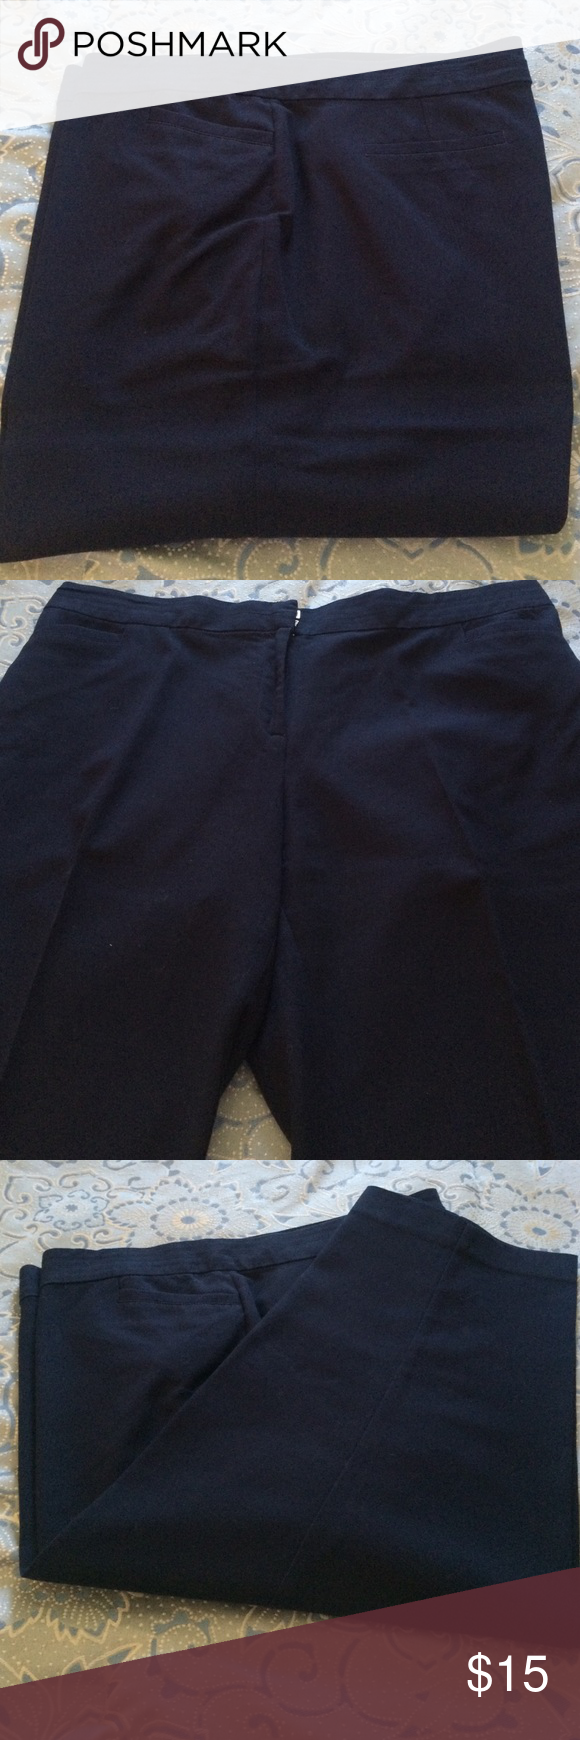 Navy Blue Carpis Navy Blue capris from Avenue. Never washed only dry cleaned. Excellent condition. Slight running between the legs but not worn thin. Avenue Pants Capris